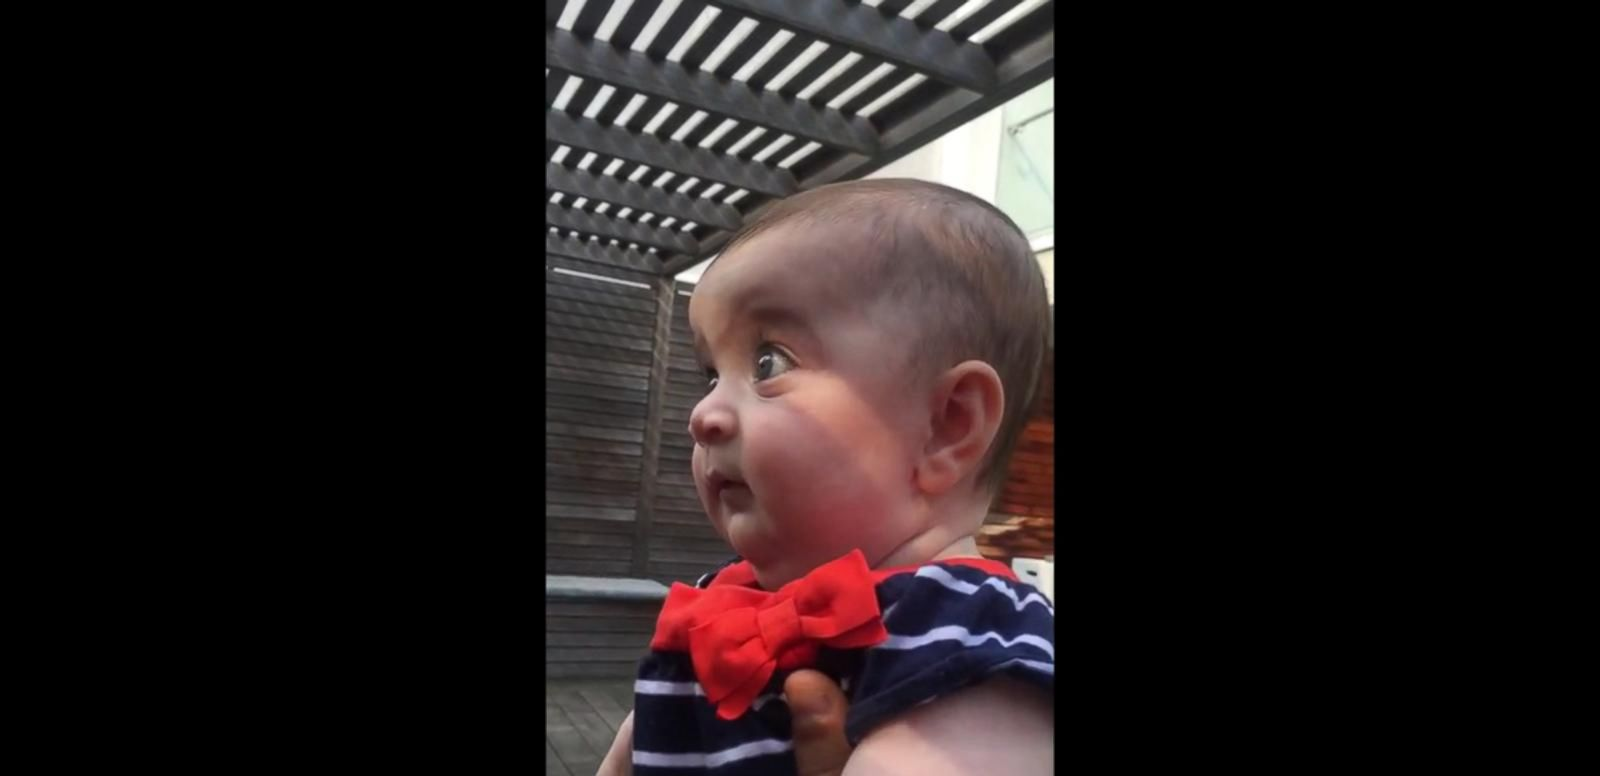 VIDEO: Baby's Mind is Completely Blown Learning About the Miracle of Life